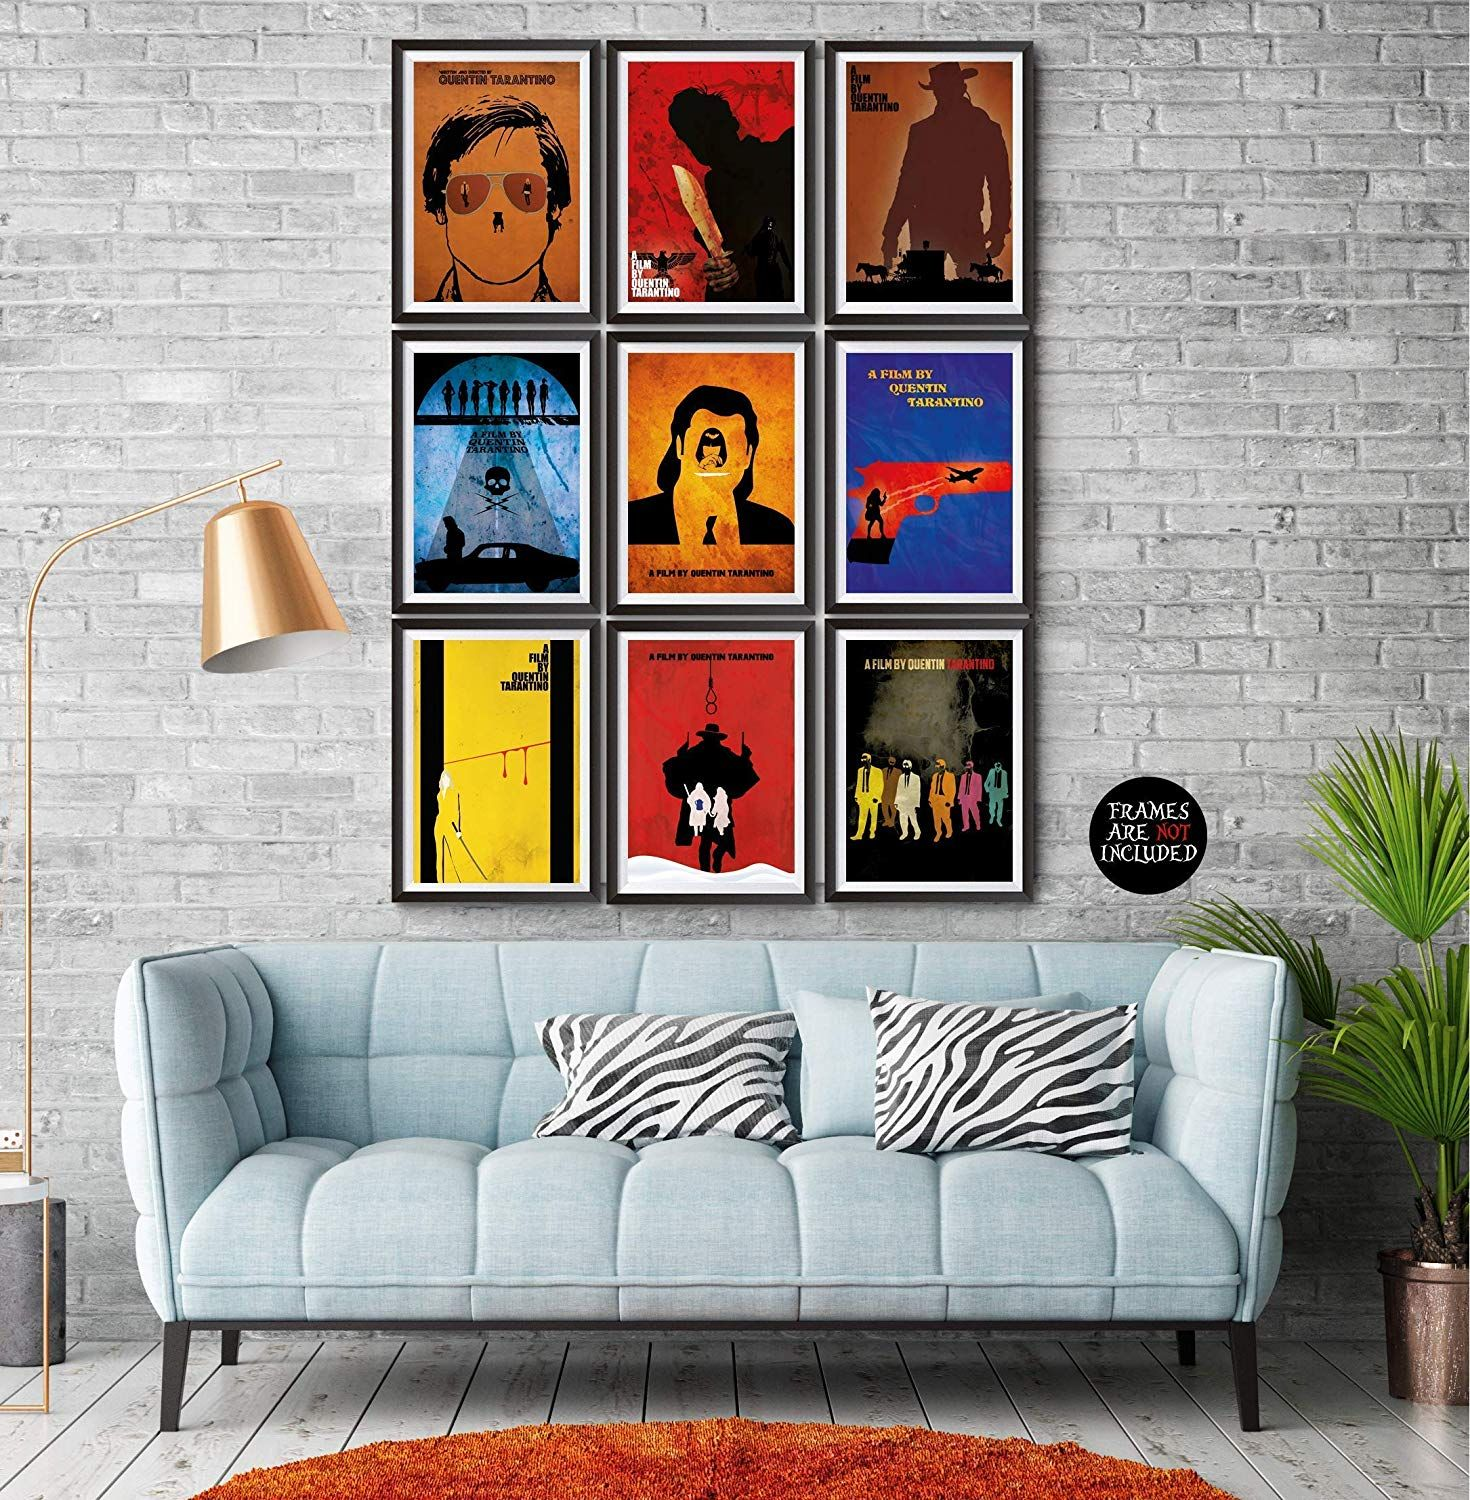 Quentin Tarantino Movies Minimalist Poster Set 9 Once Upon A Time In Hollywood The Hateful Eight In 2020 Minimalist Poster Quentin Tarantino Movies Love Wall Art